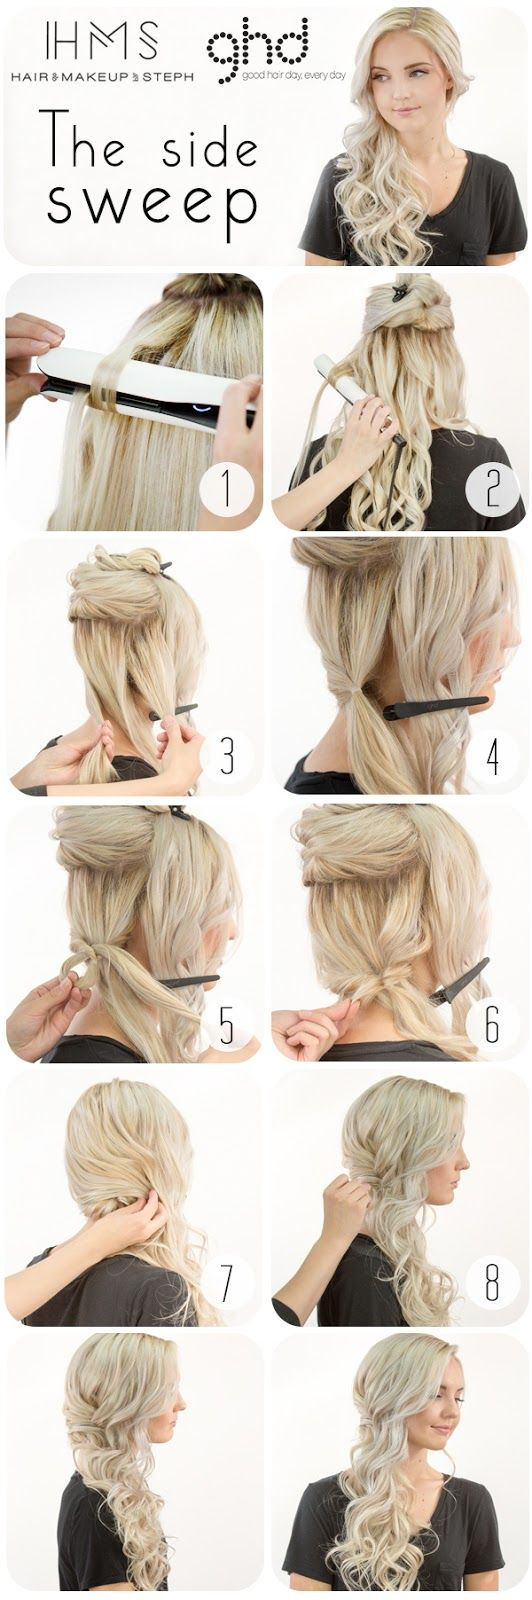 Hair and Make-up by Steph: How To: Bridal Side Swept Hair